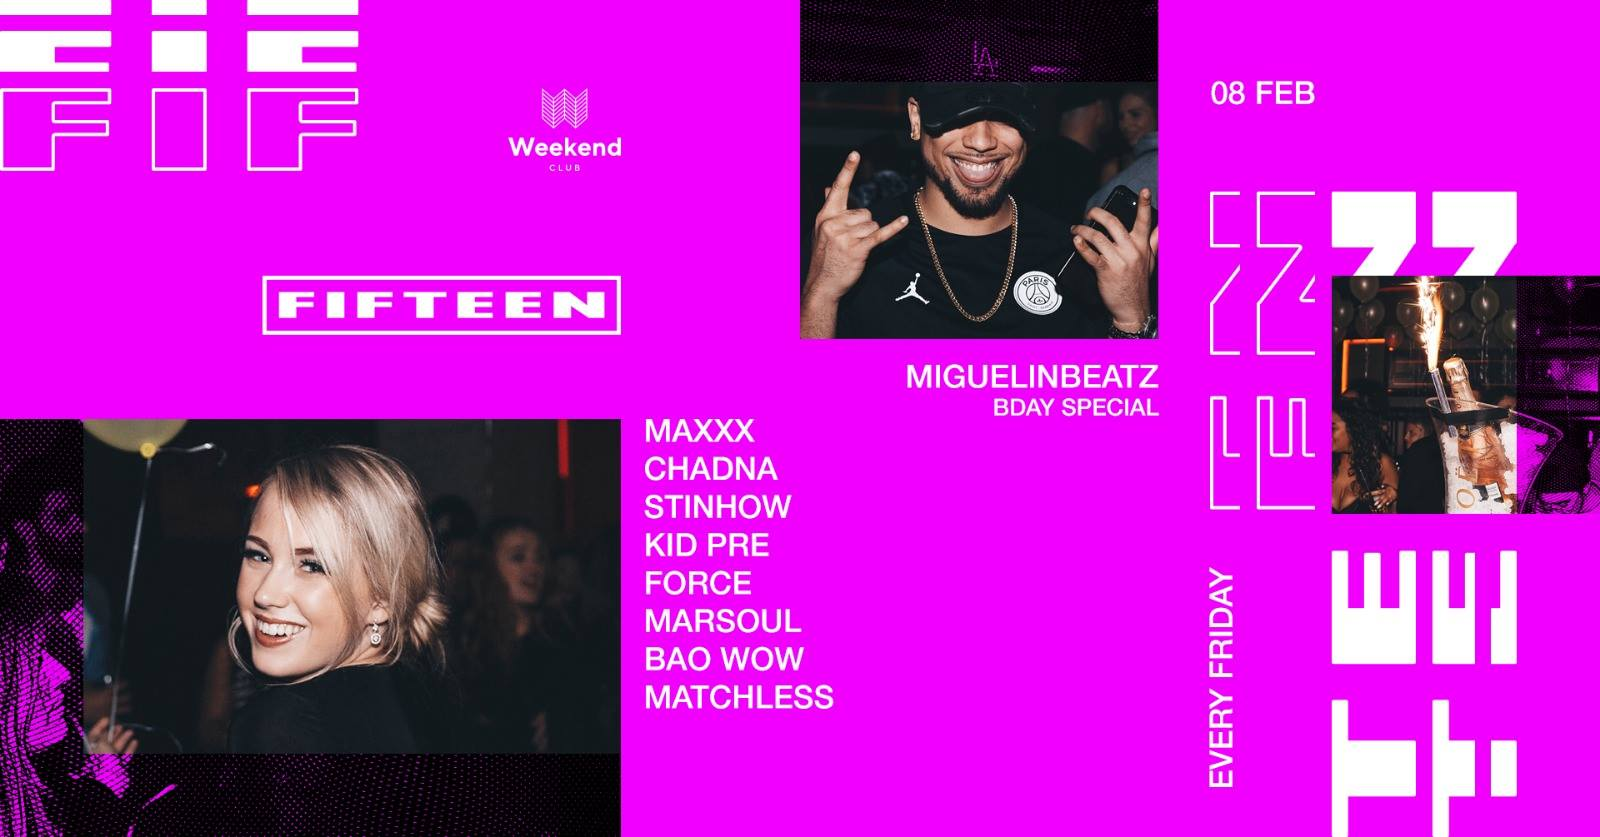 Fifteen  - Hip Hop Friday -Miguelinbeatz Bday Special  We want to create a spot for people with open minded visions of music & fashion. An esthetic look is an essential step to treat your body like it deserved. Be curious - be a part. Every Friday finest Hip Hop with best local and international DJs.